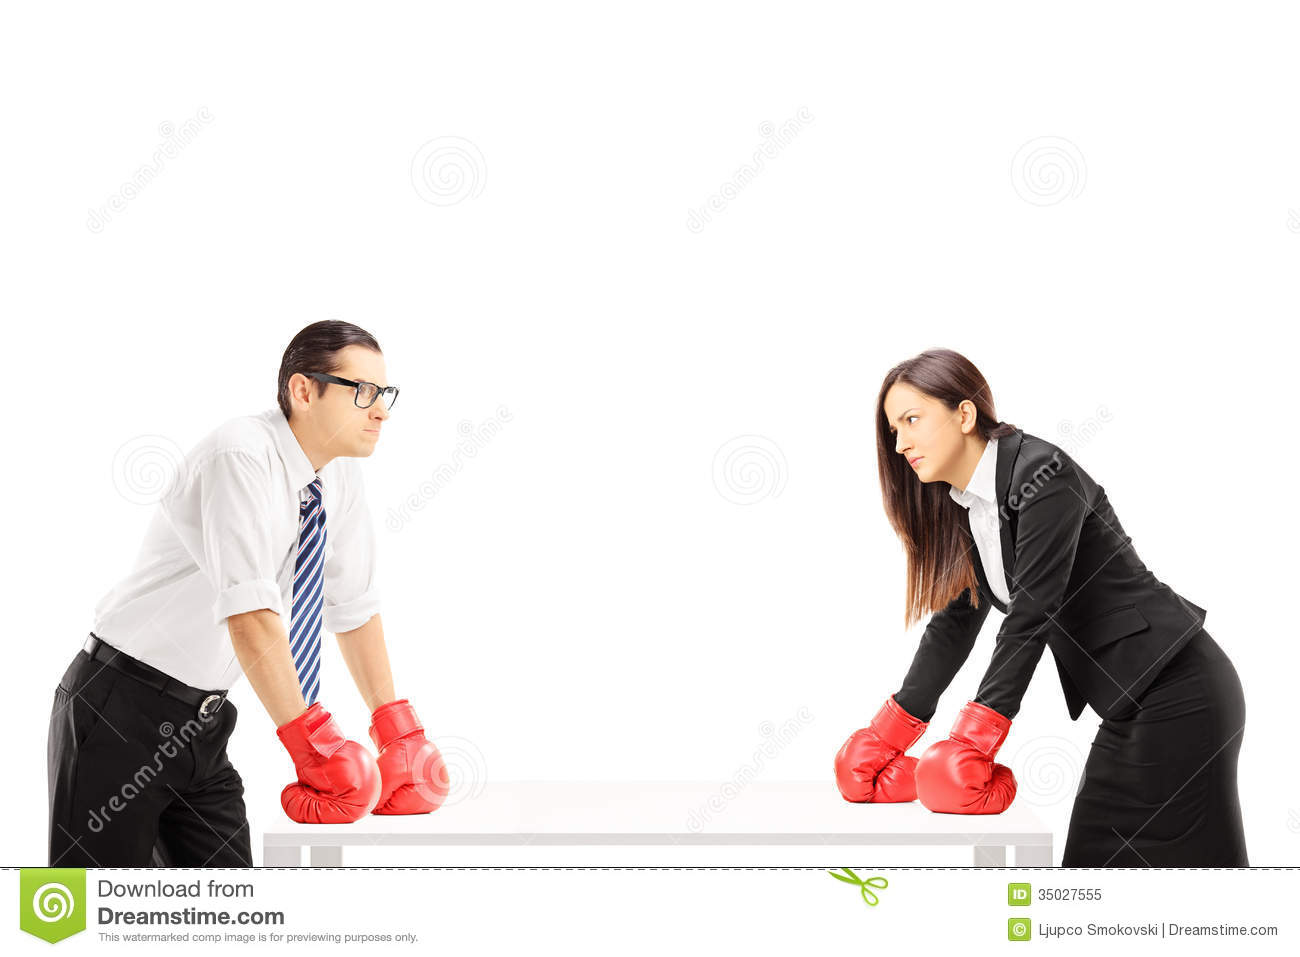 Two angry businesspeople with boxing gloves having an argument